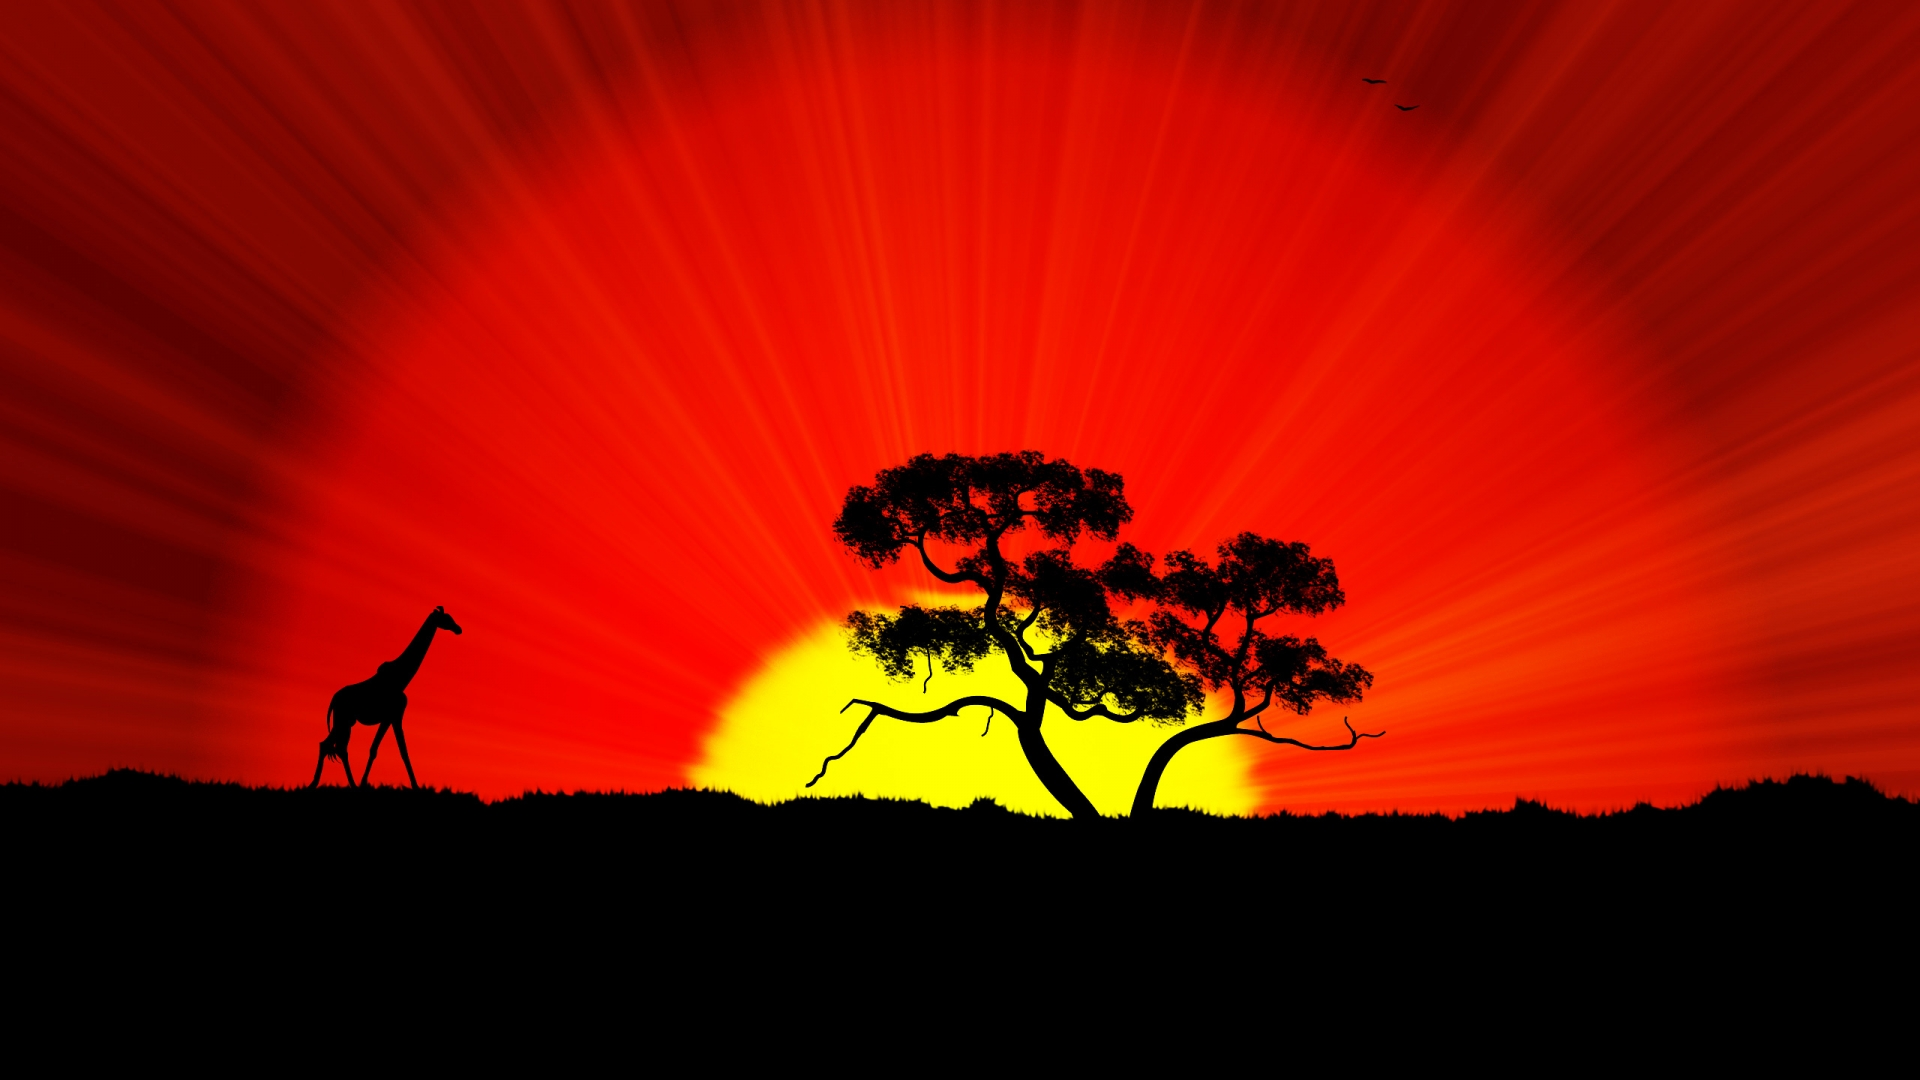 Africa-Silhouettes-Elephants-x-wallpaper-wp3402199